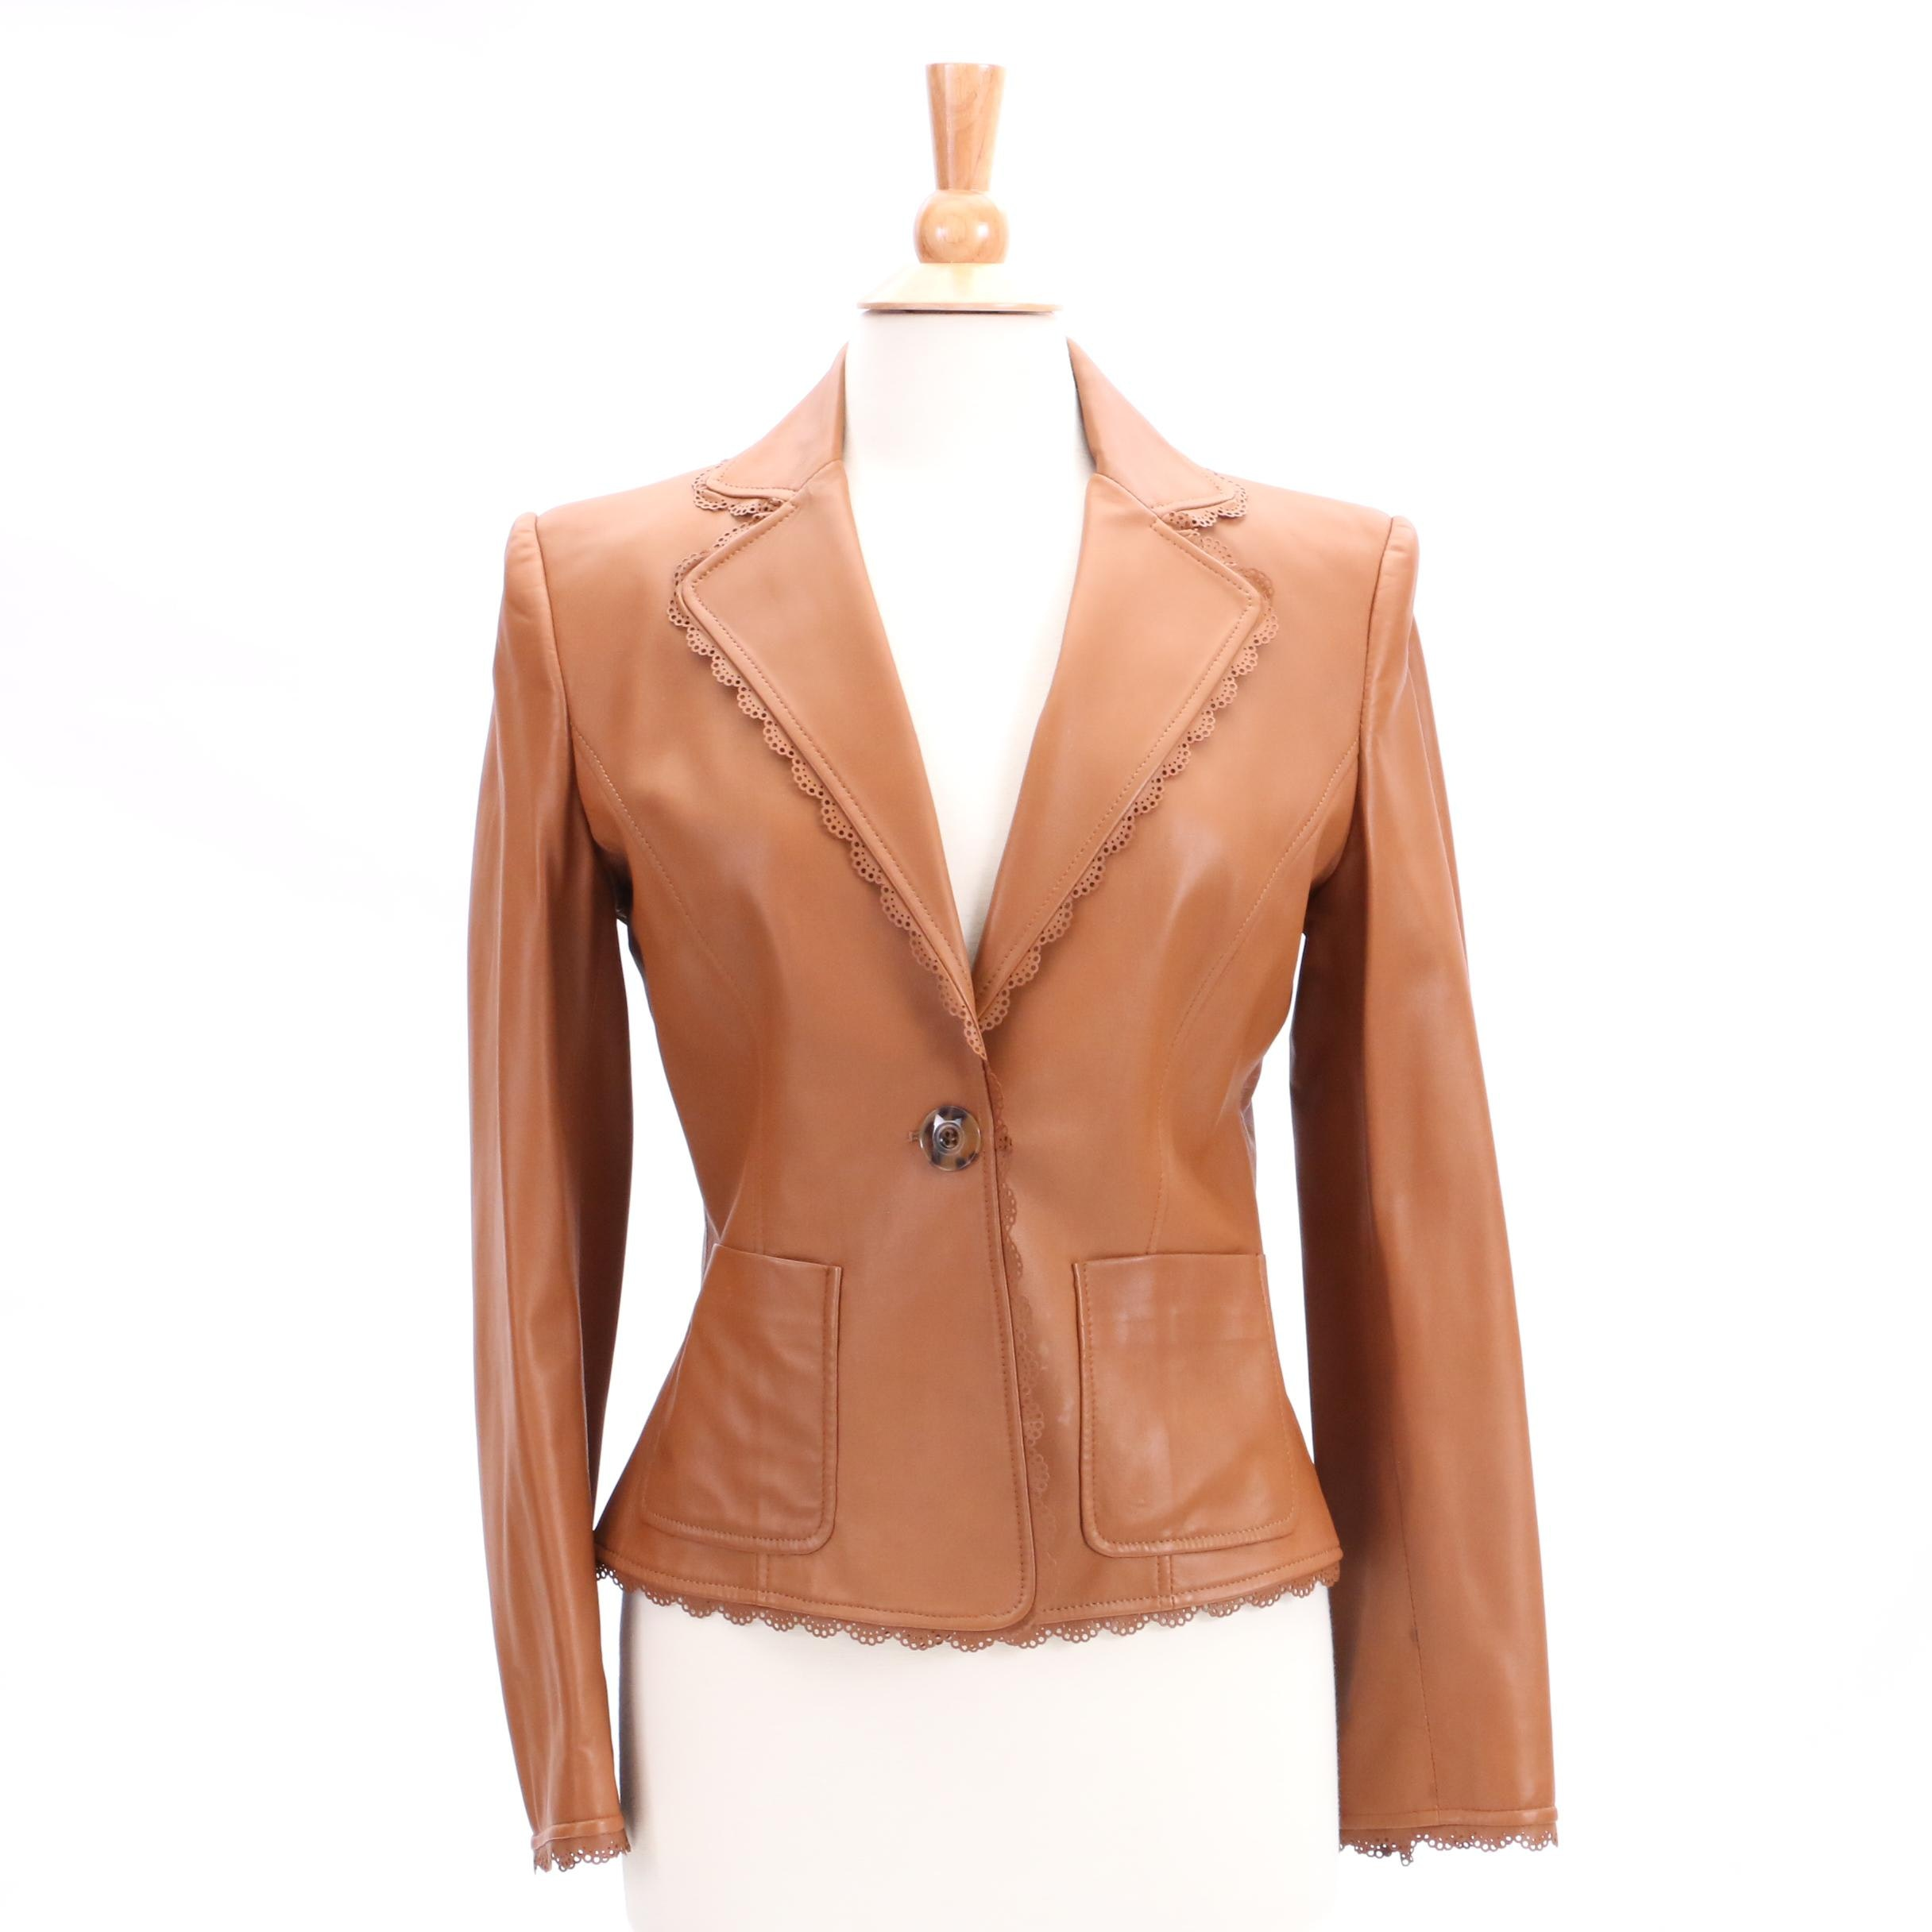 Valentino Tan Lambskin Leather Jacket